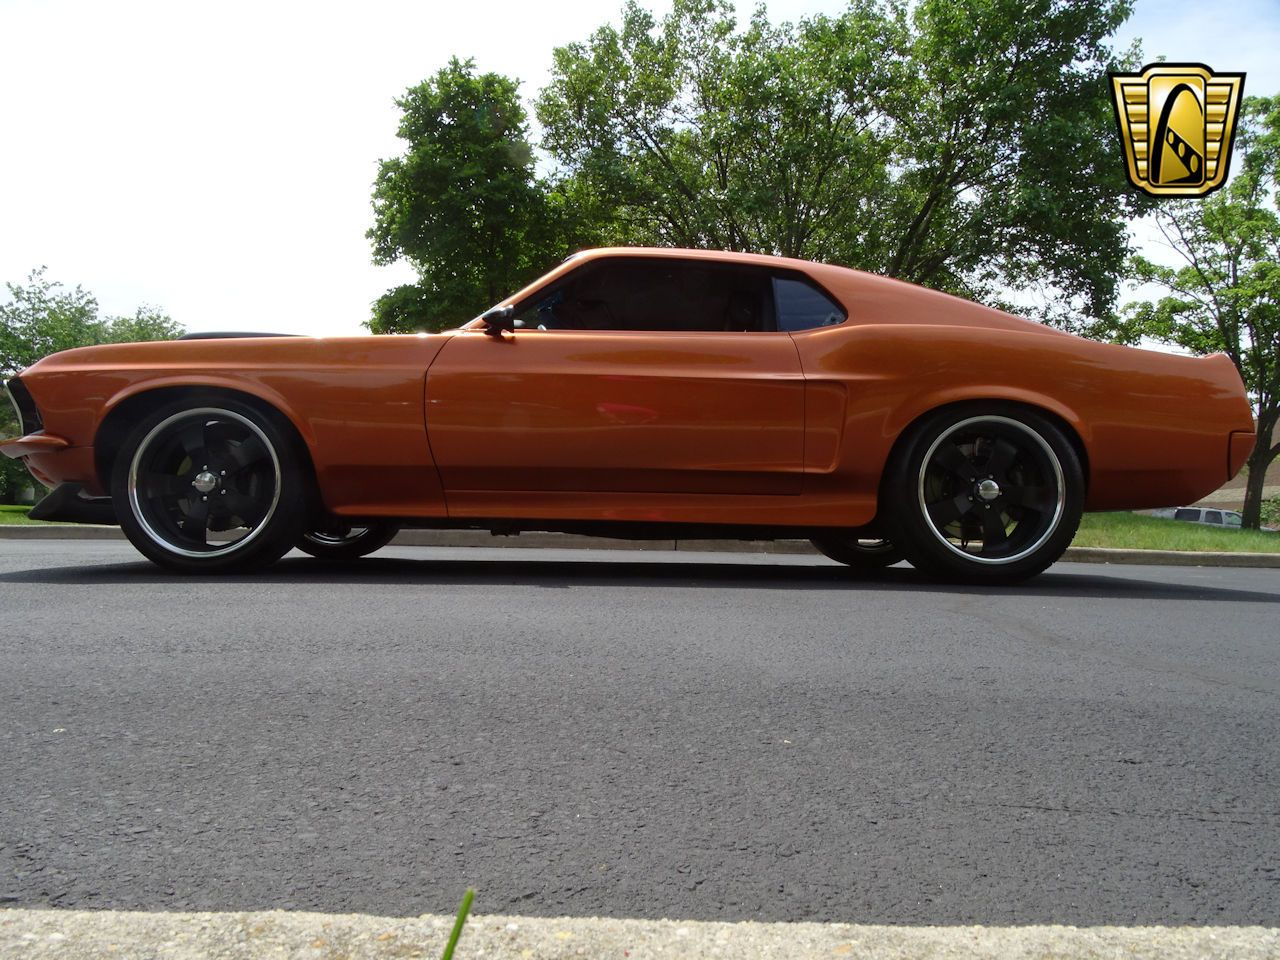 Pin by Dave Hendrick on Vroom vroom in 2020 Ford mustang